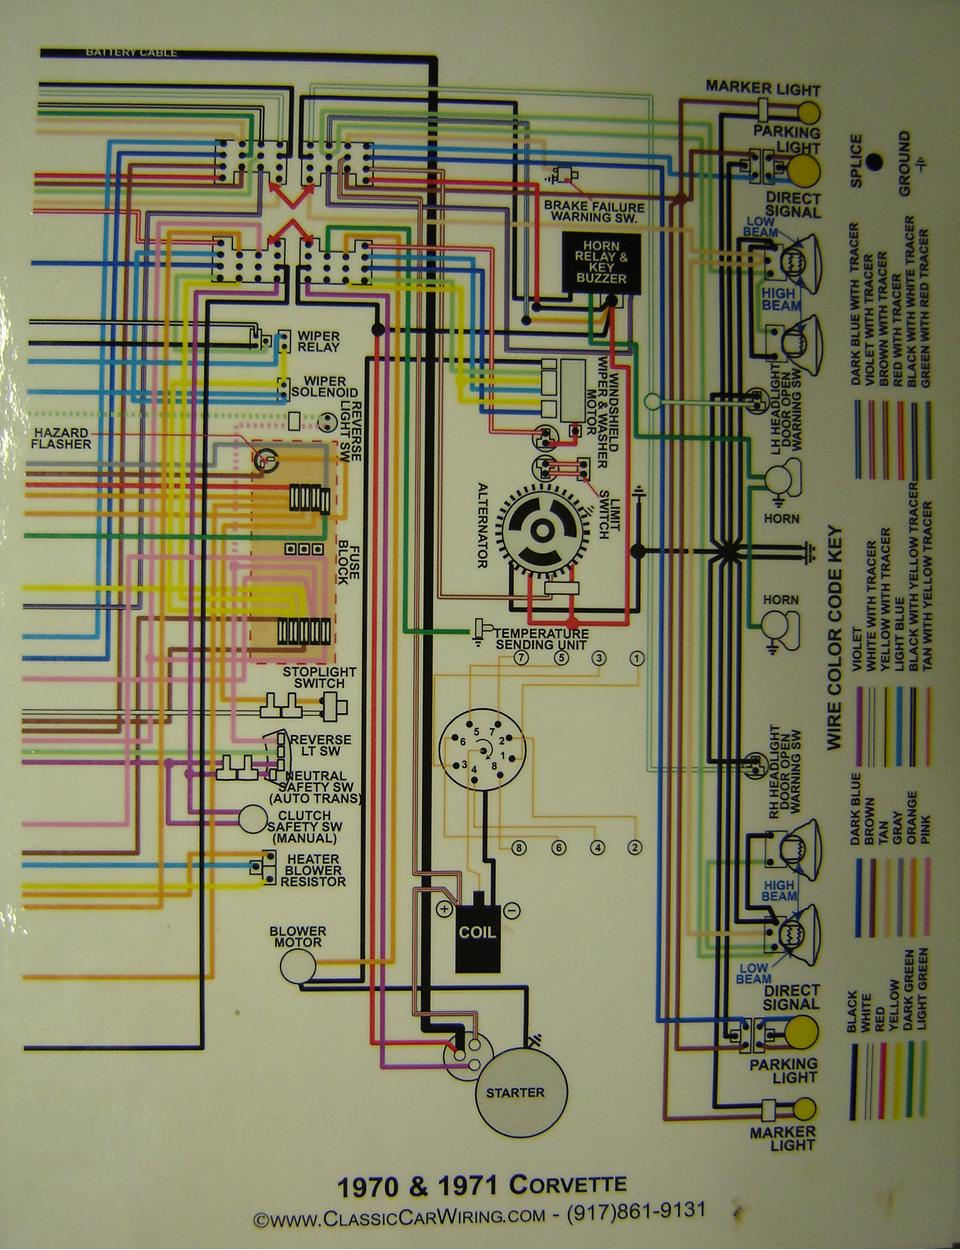 1970 71 corvette color wiring diagram B chevy diagrams color wiring diagram at suagrazia.org